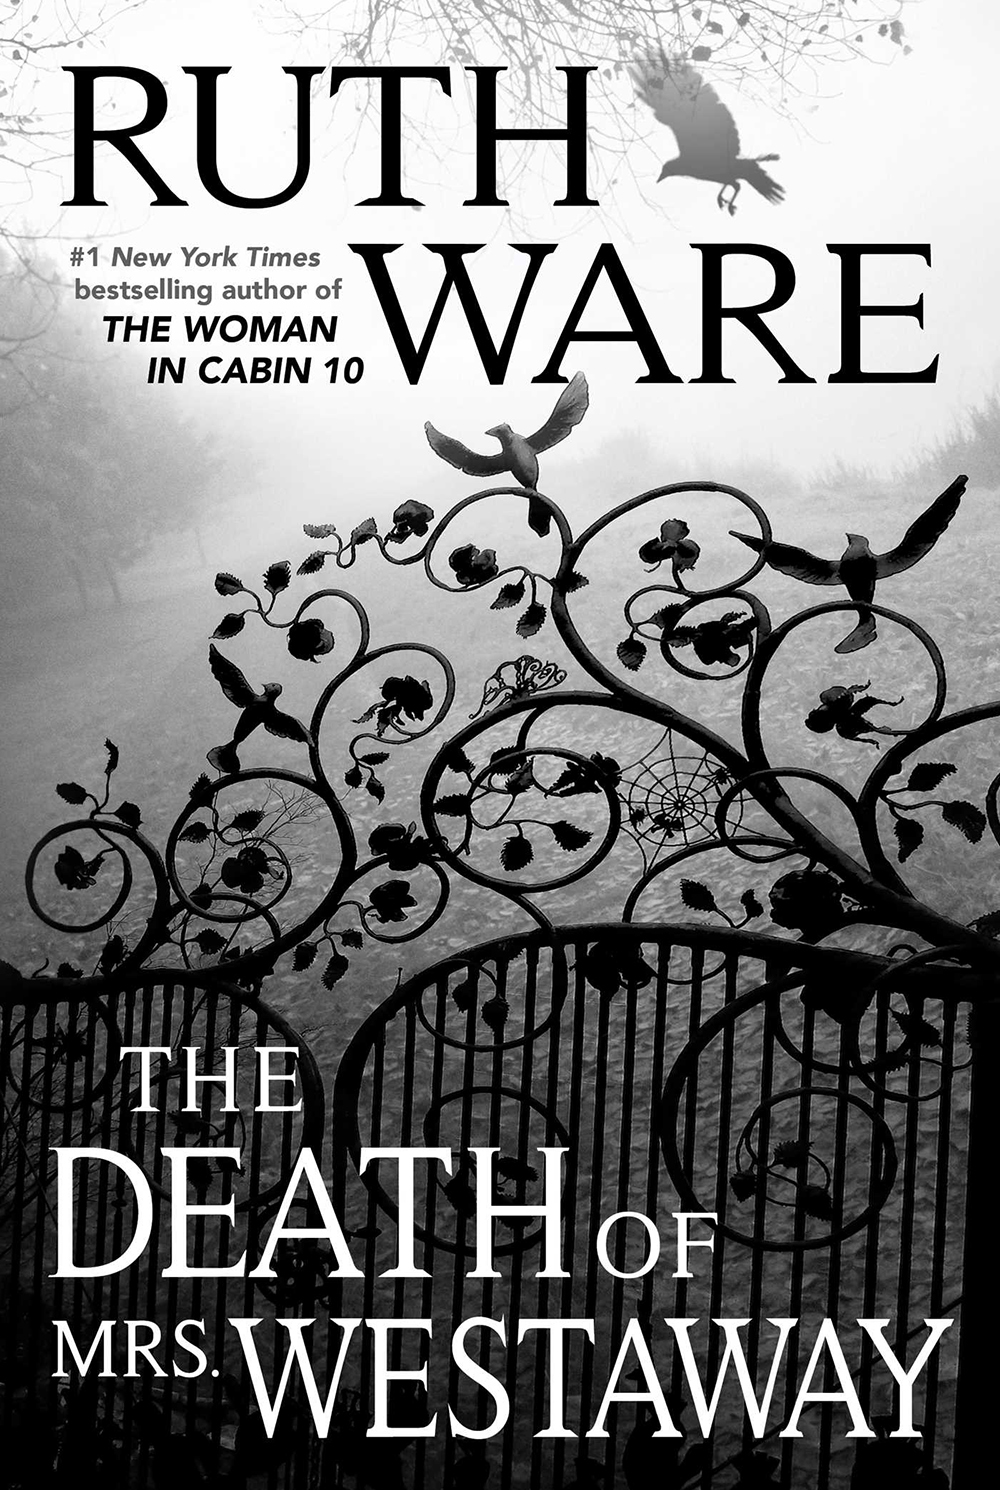 10 The Death of Mrs. Westaway